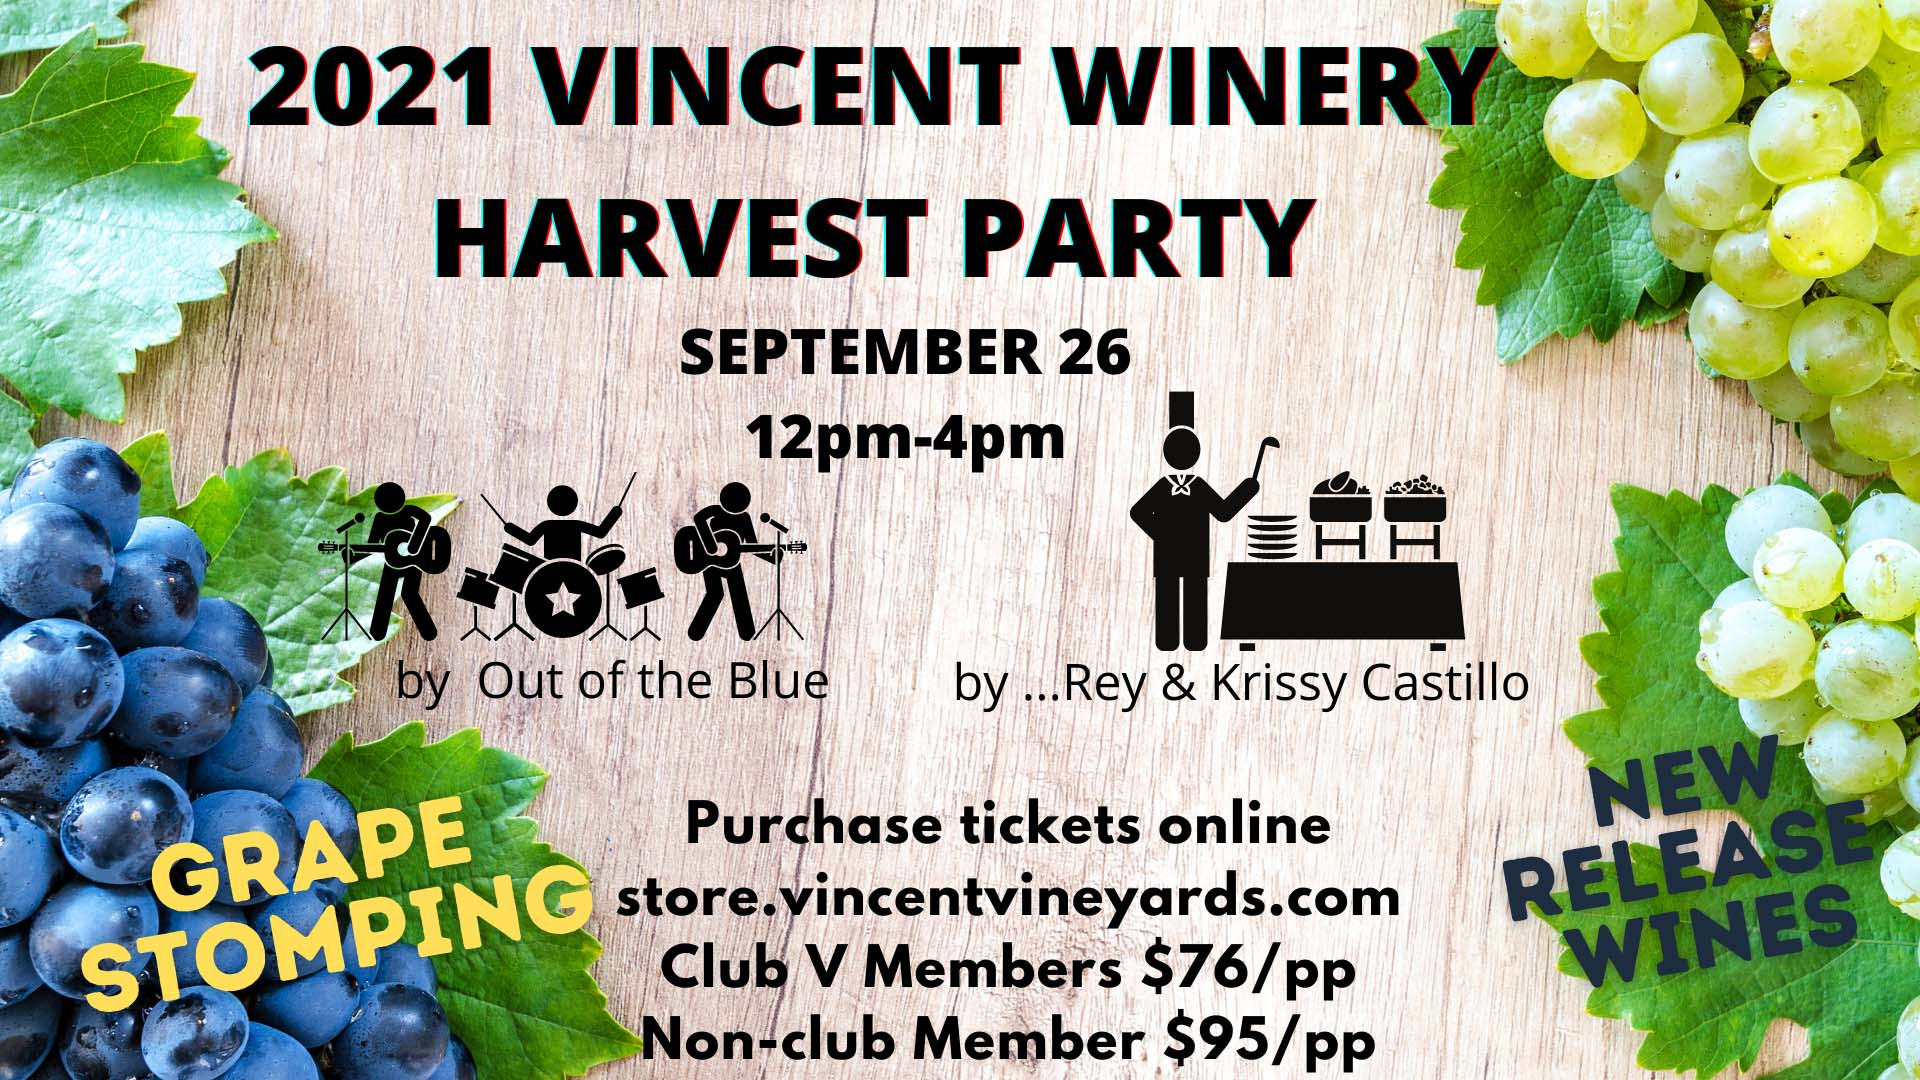 2021 Harvest Party Flyer